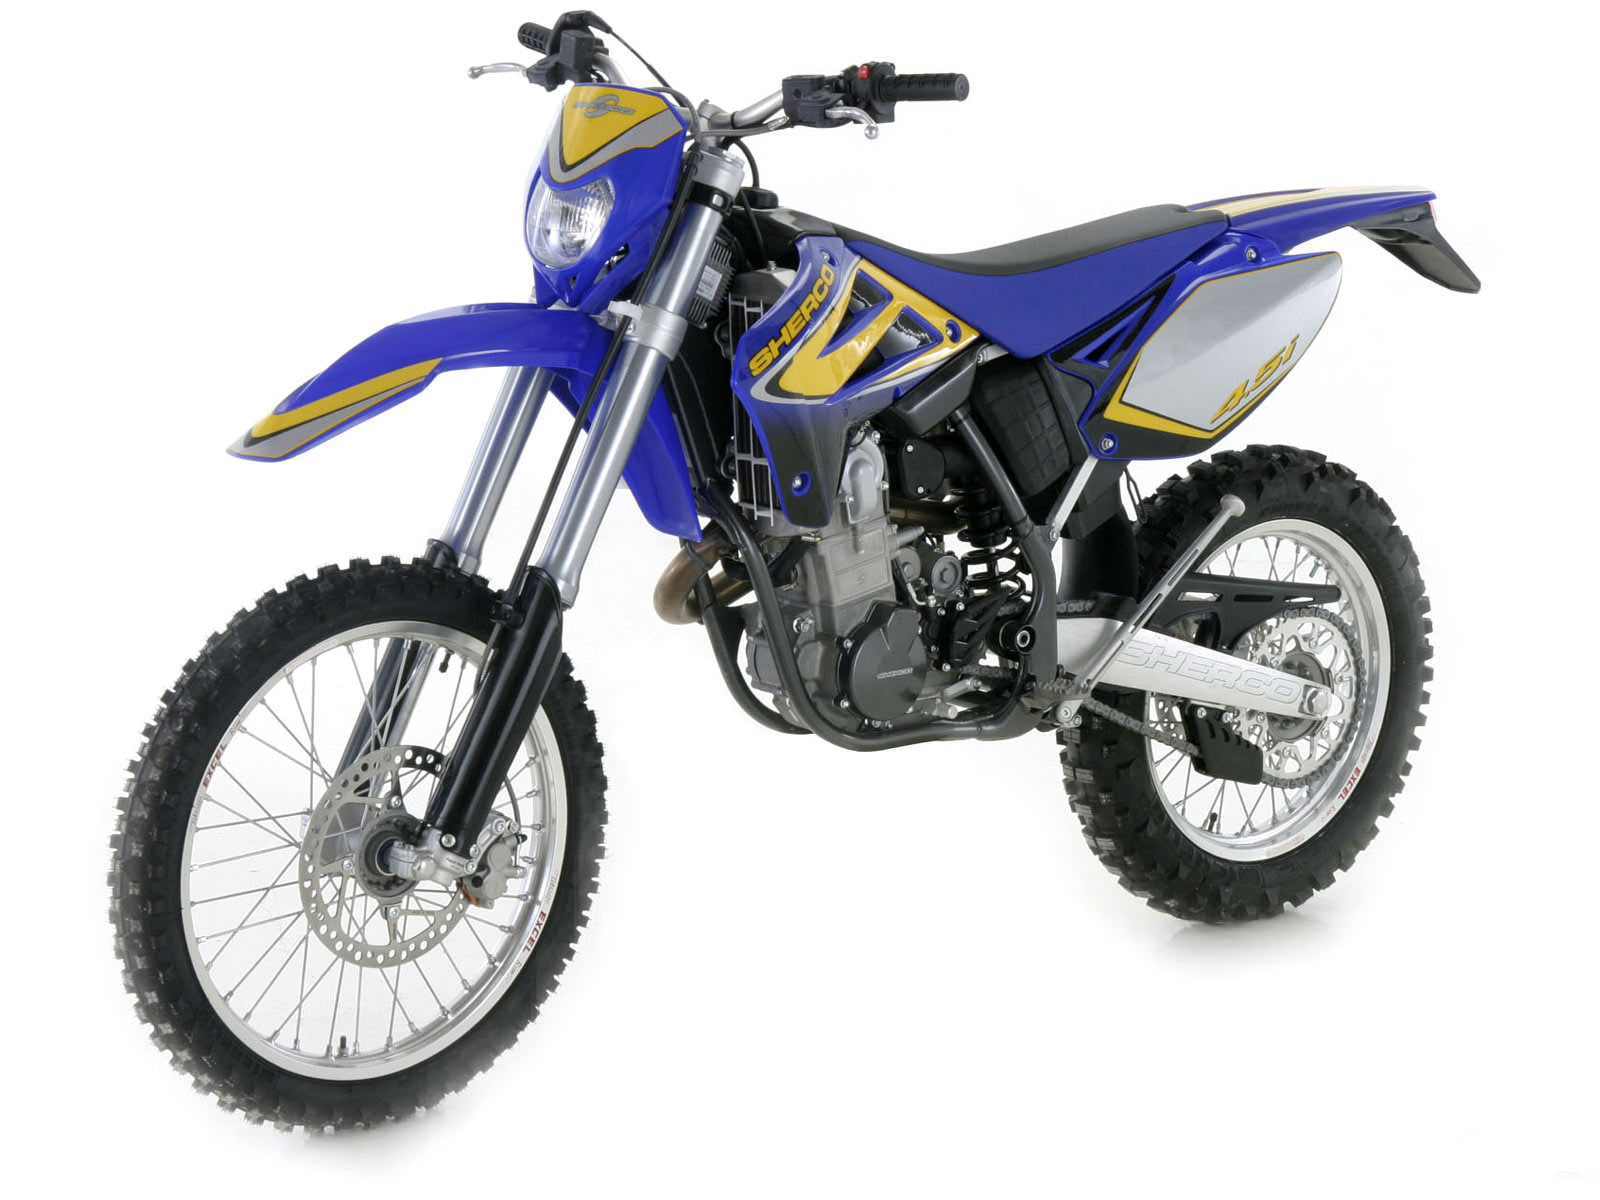 Highland 950 V2 Outback Supermoto 2005 images #97060